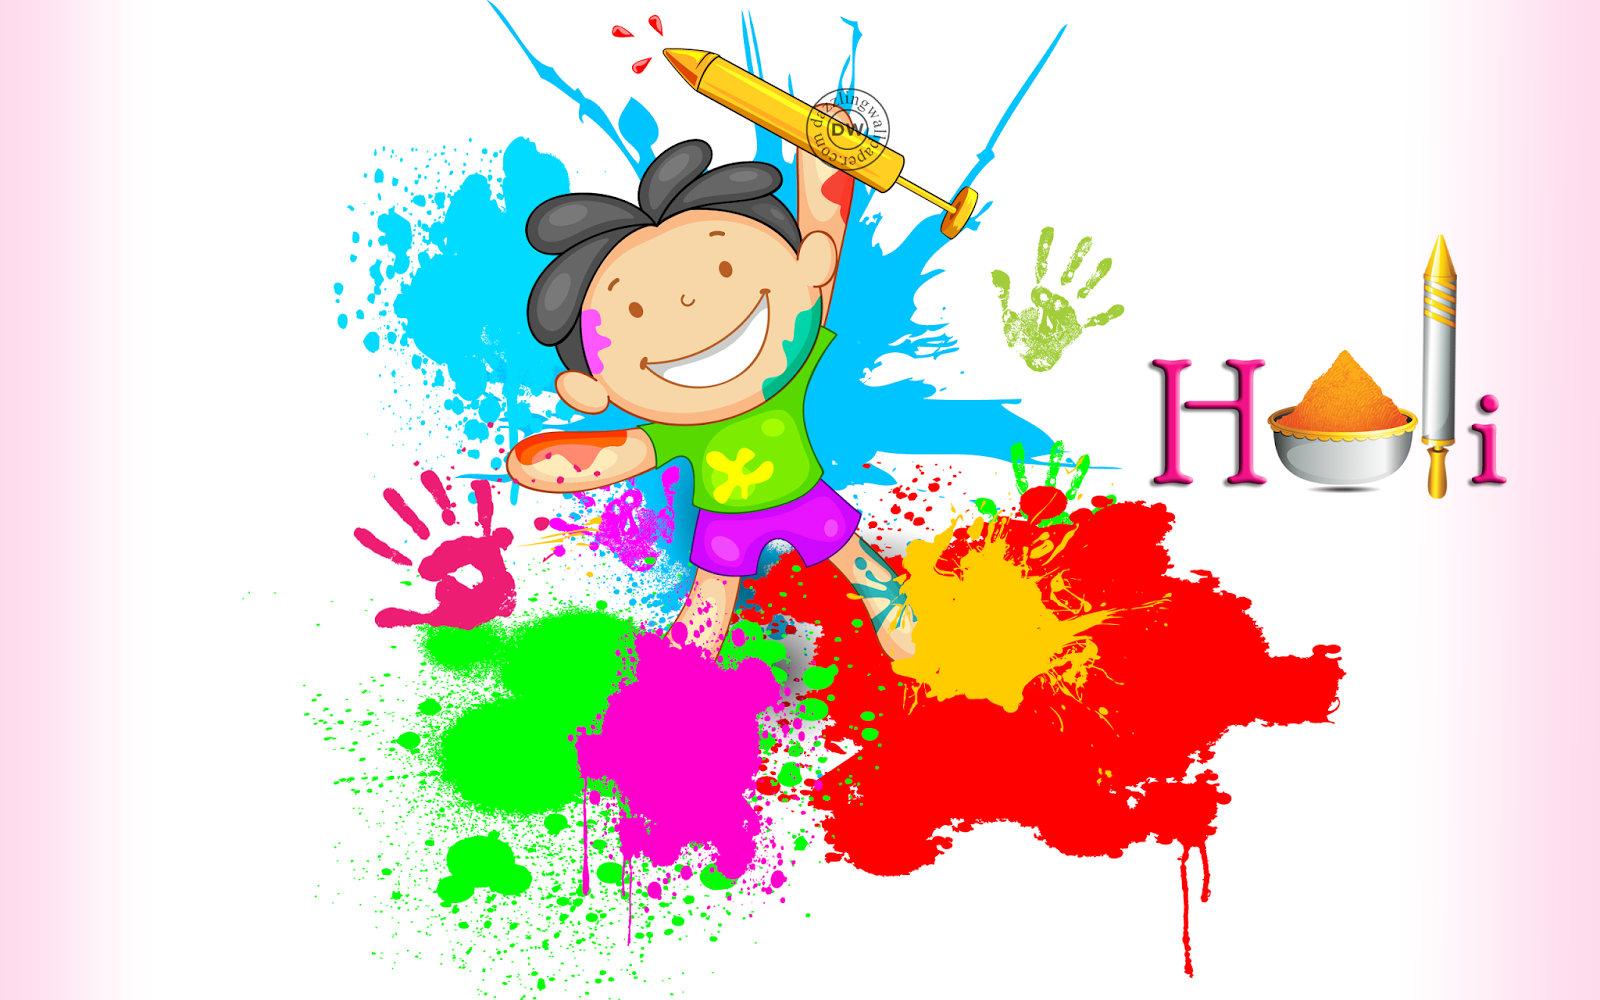 Happy Holi SMS Wishes Status in English Hindi 2017 For Facebook Whatsapp